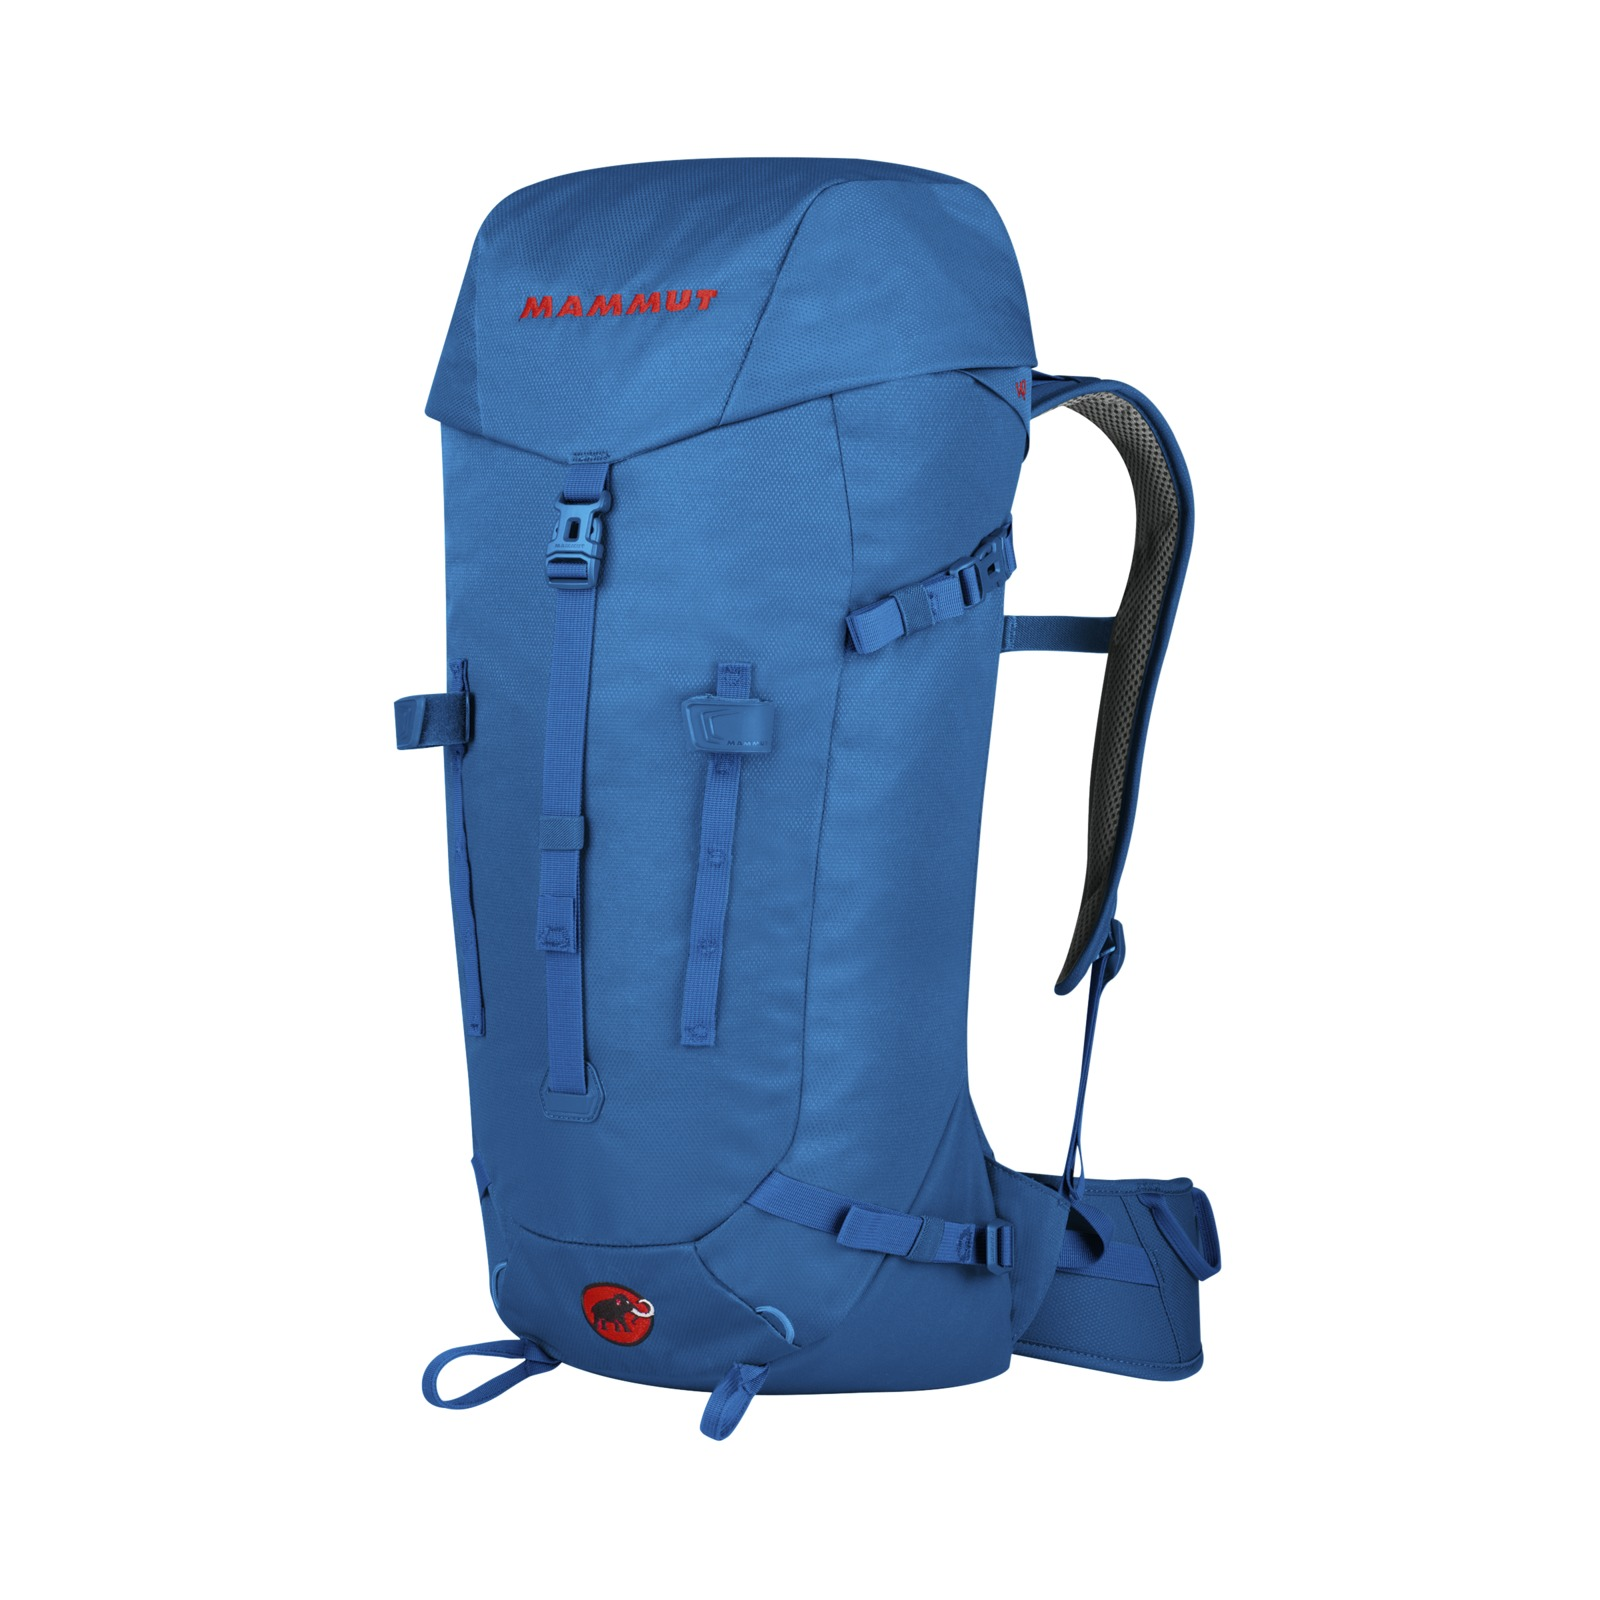 2c8596d2ba1f2 Mammut | Trion Tour | 35 Plus 7 | Backpack | Dark Cyan £42.50